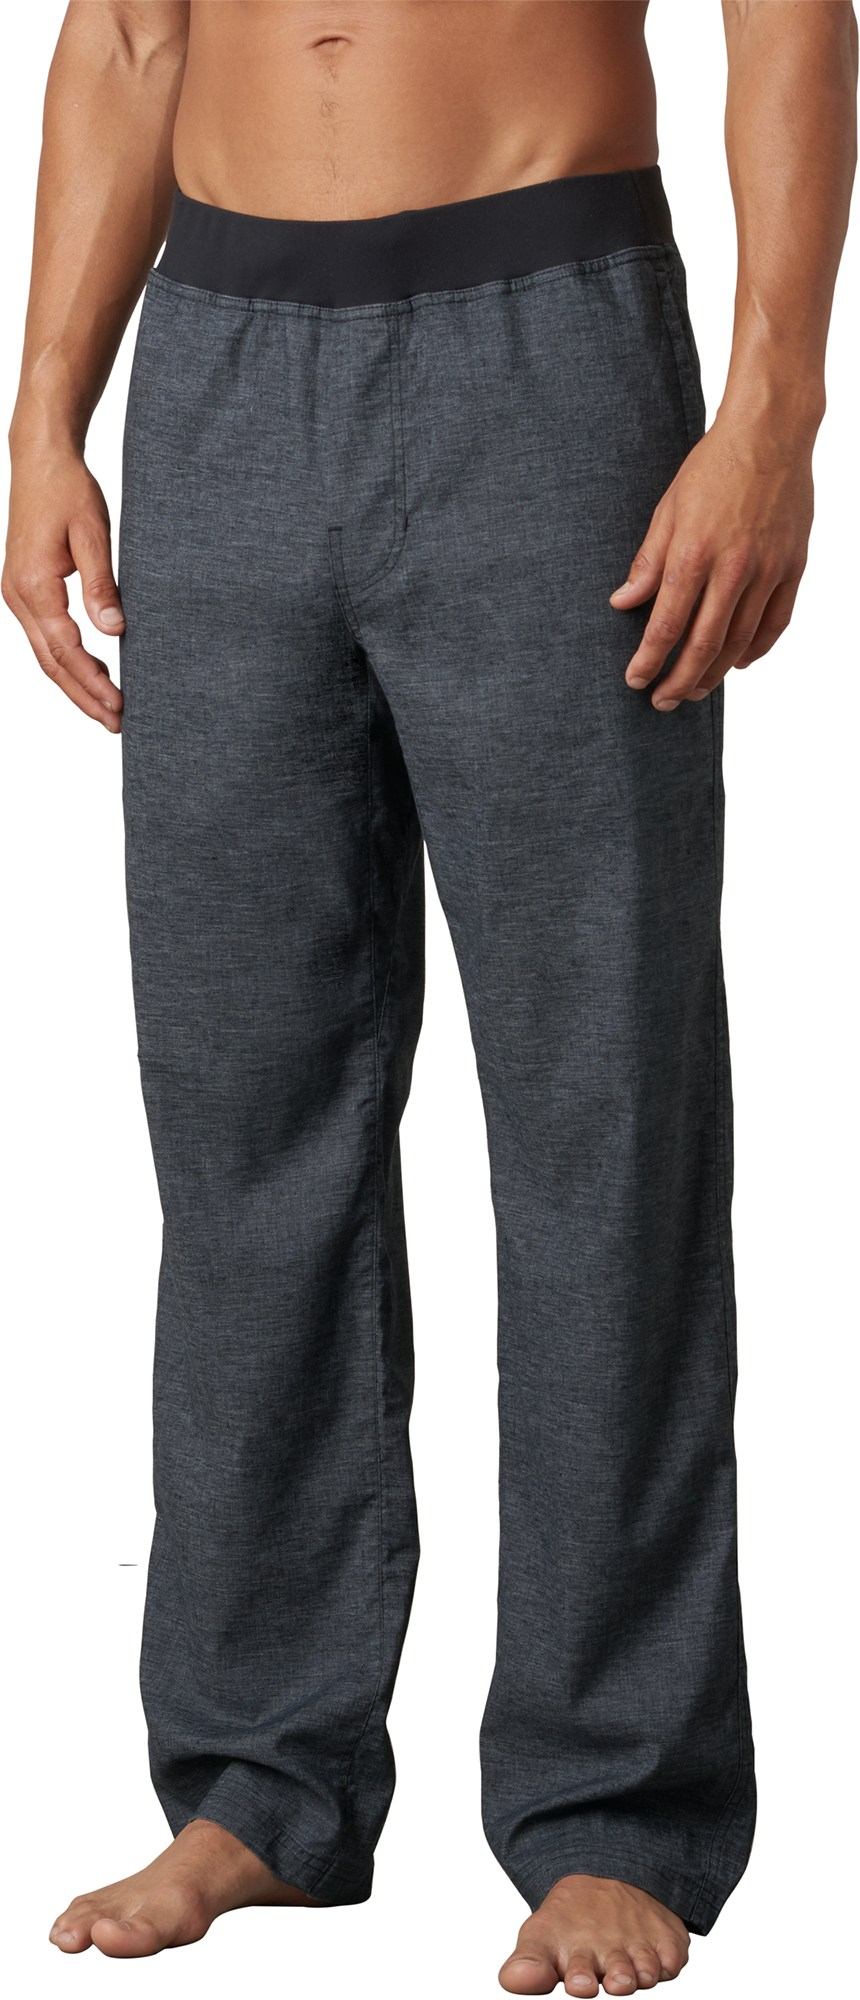 prAna Vaha Pants - Men's 34